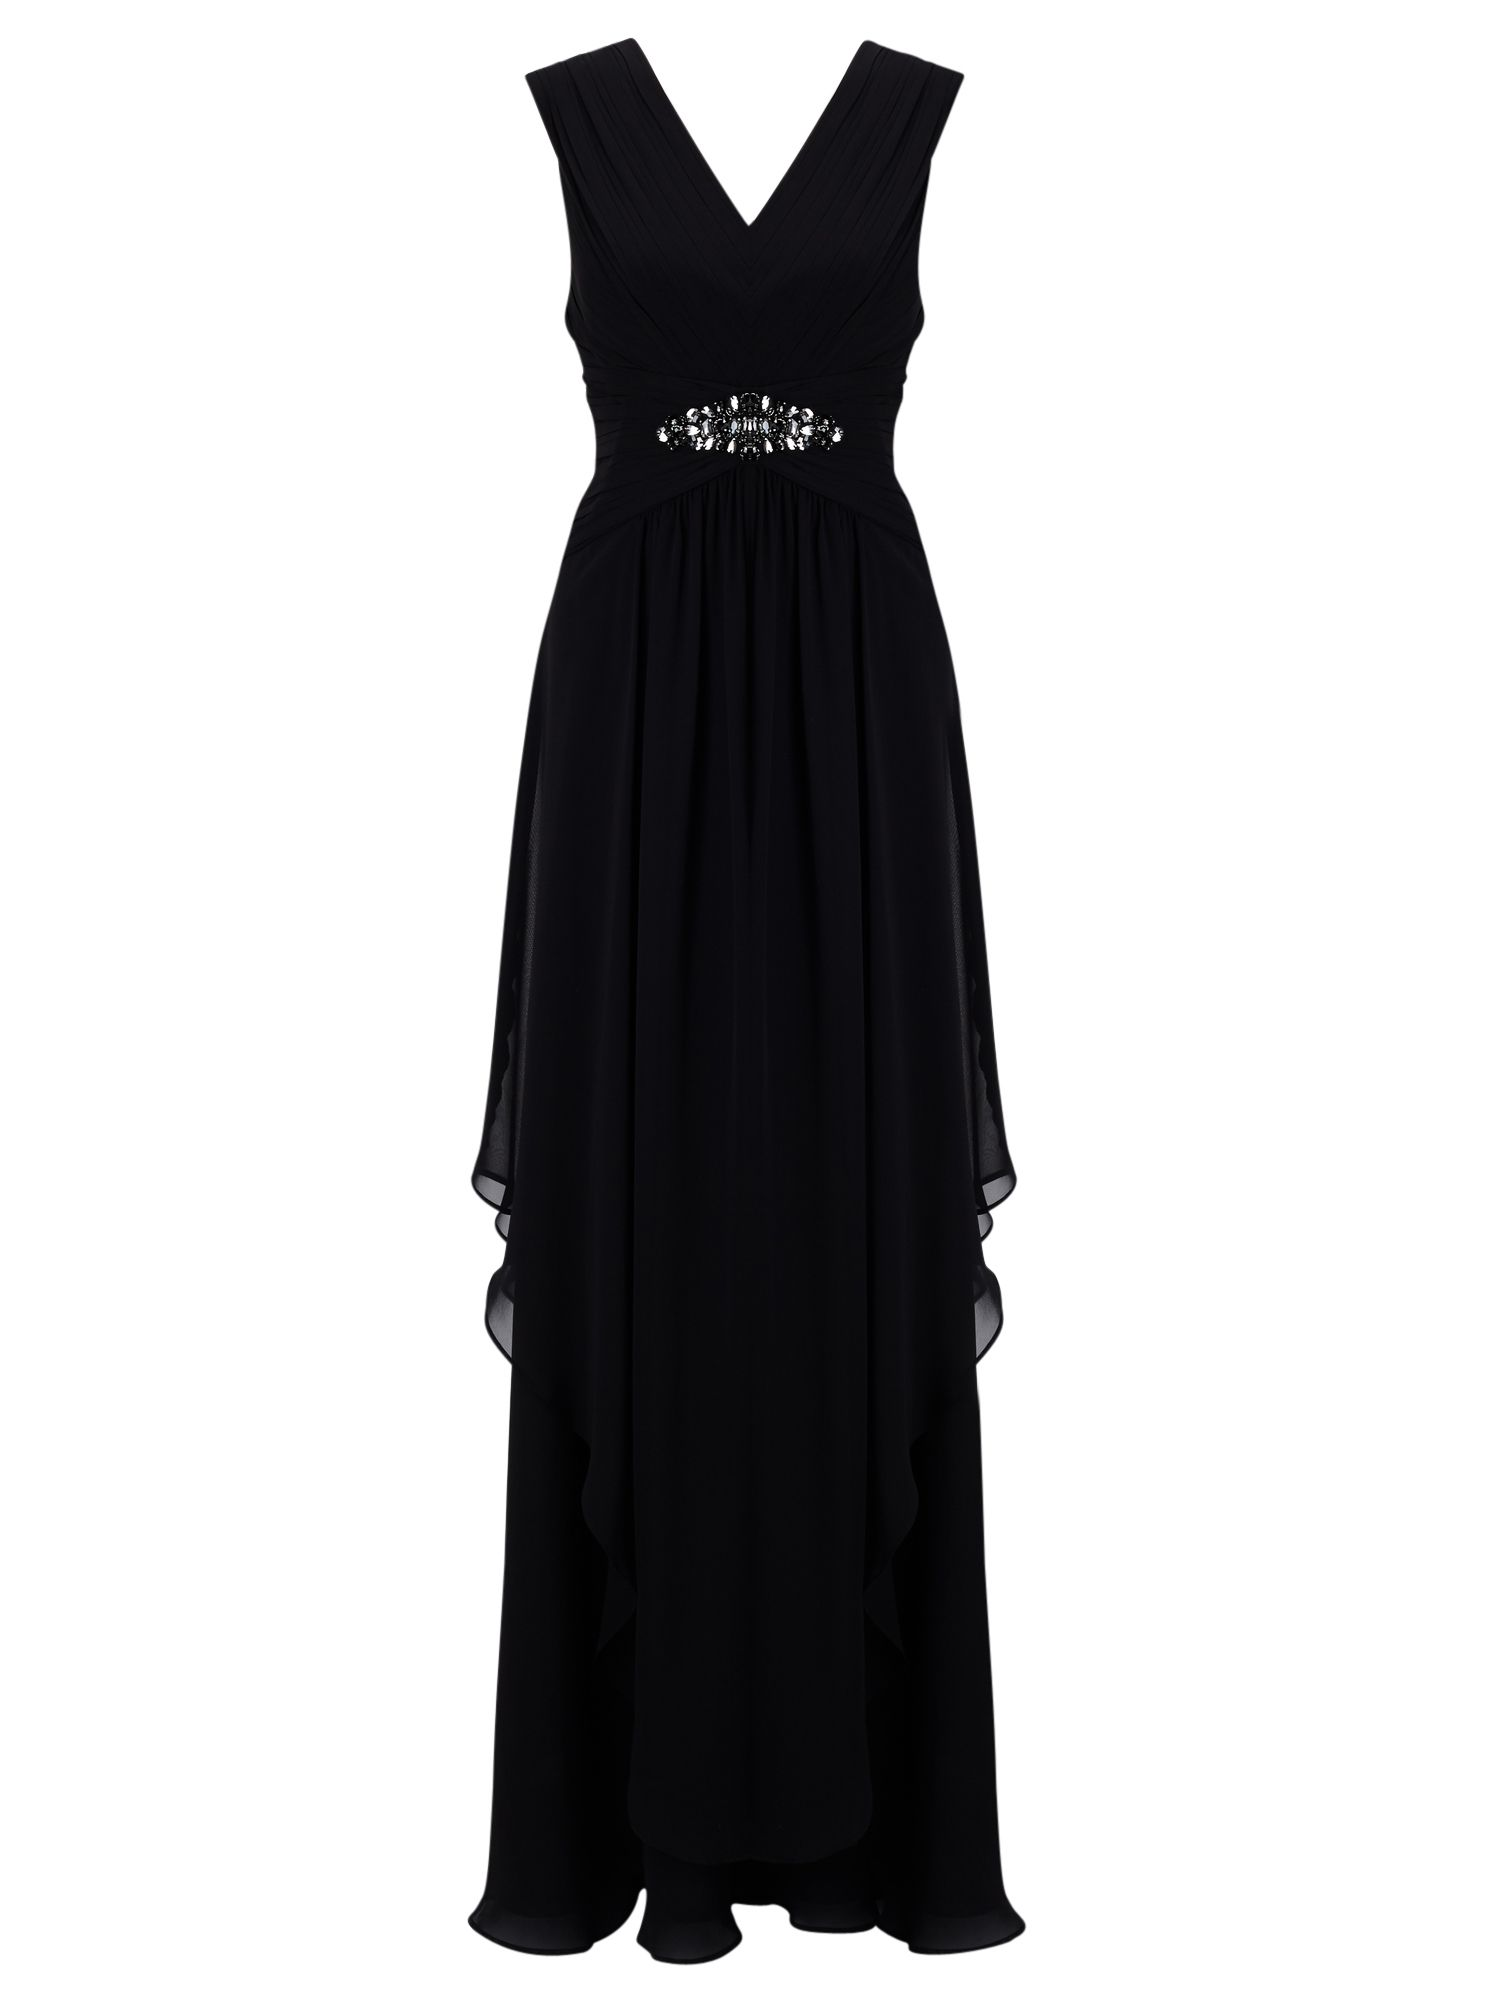 TitanicStyleDressesforSale Jacques Vert Maxi Hanky Hem Dress Black £99.00 AT vintagedancer.com